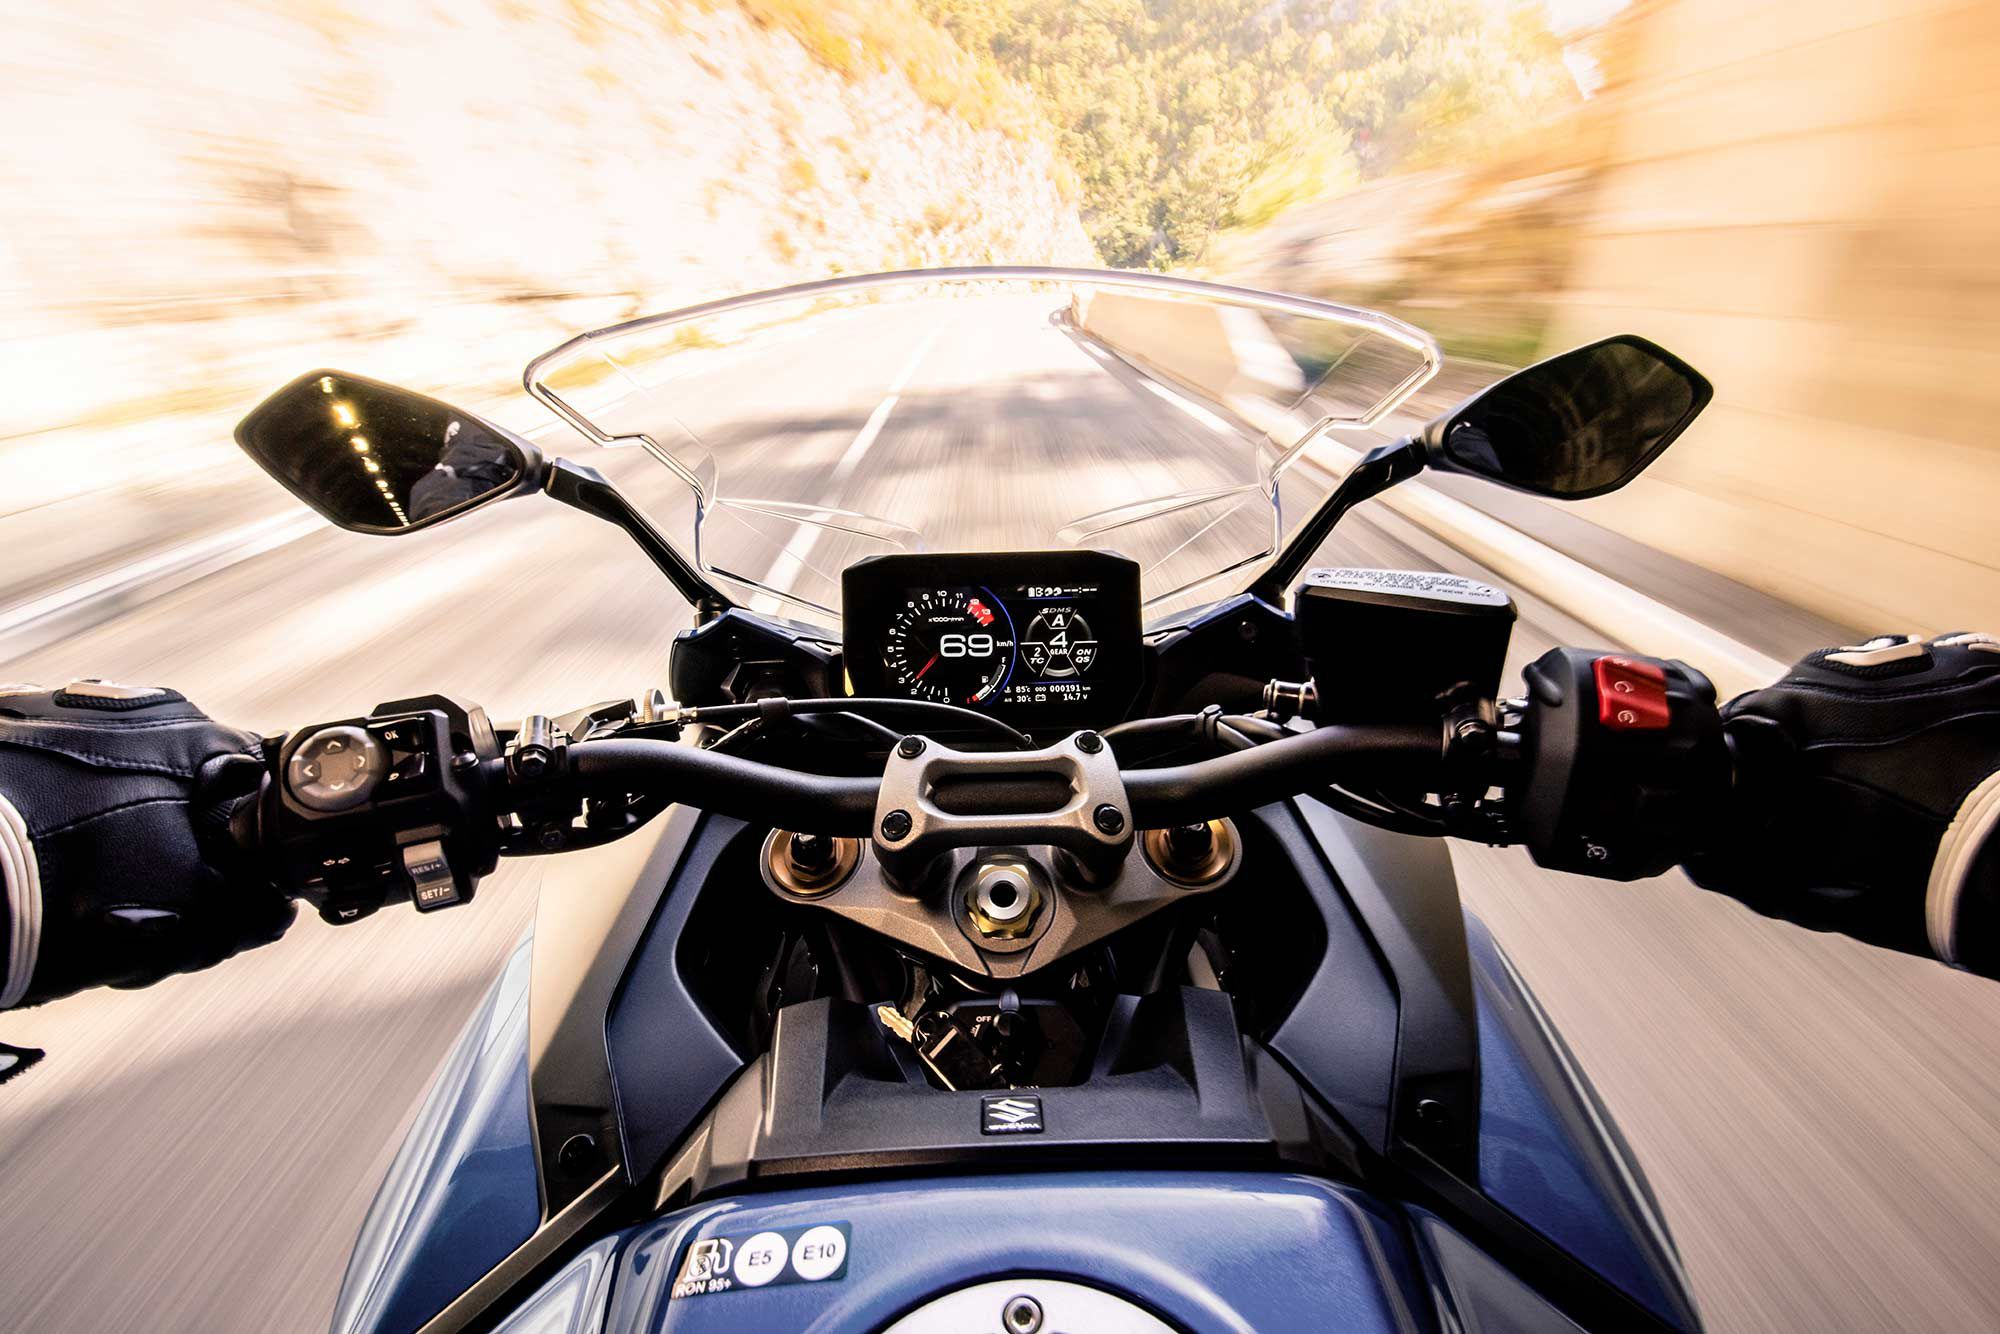 A new 6.5-inch TFT display provides all the bike and ride information.